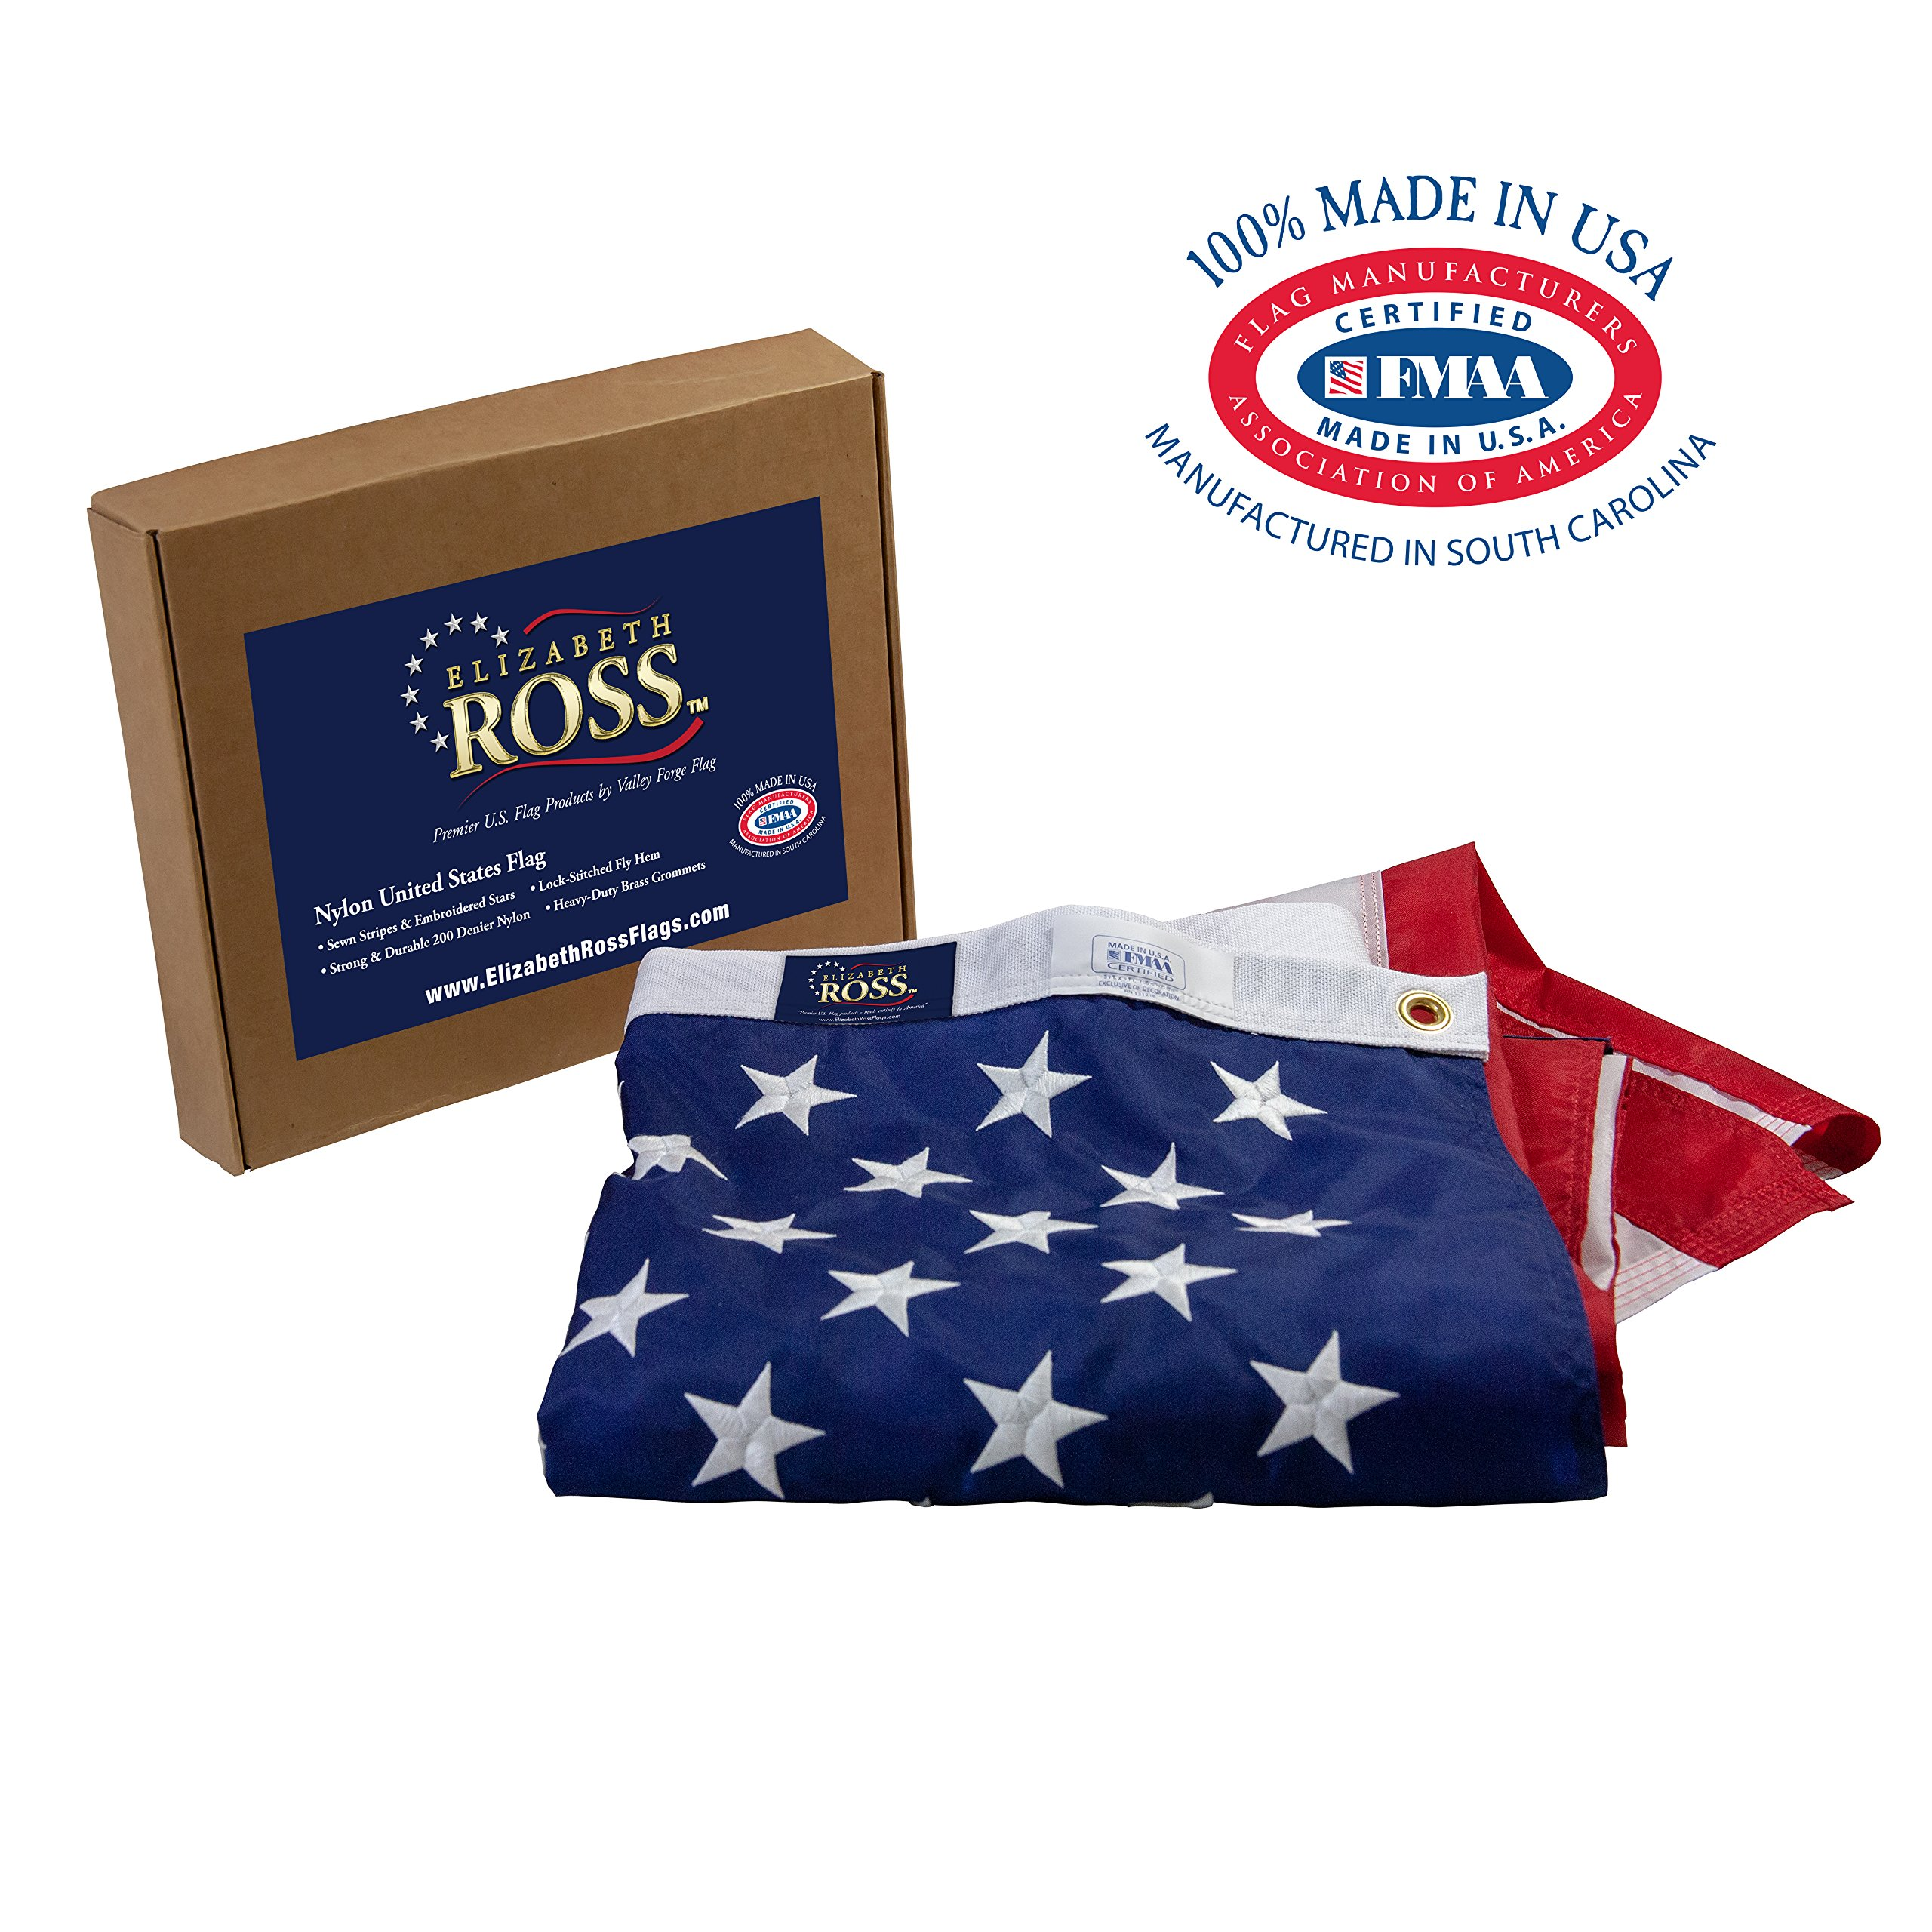 Elizabeth Ross American Flag, Nylon, Perma-NYL, 5'x8' 100% Made in USA, Sewn Stripes, Embroidered Stars, Heavy-Duty Brass Grommet, Premier US Products by Valley Forge Flag by Valley Forge